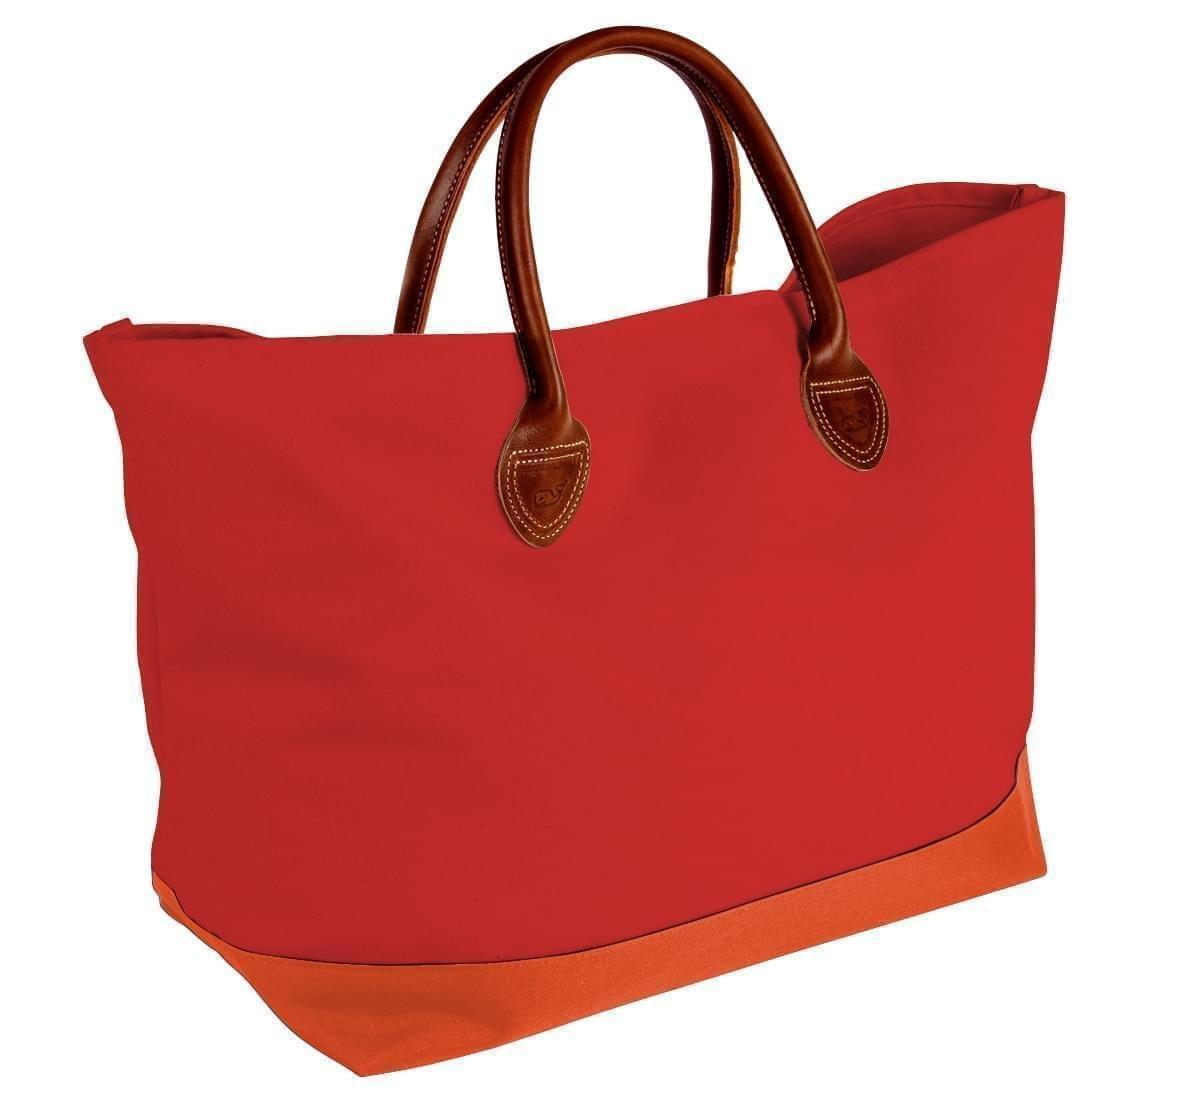 USA Made Canvas Leather Handle Totes, Red-Orange, 10899-JE9